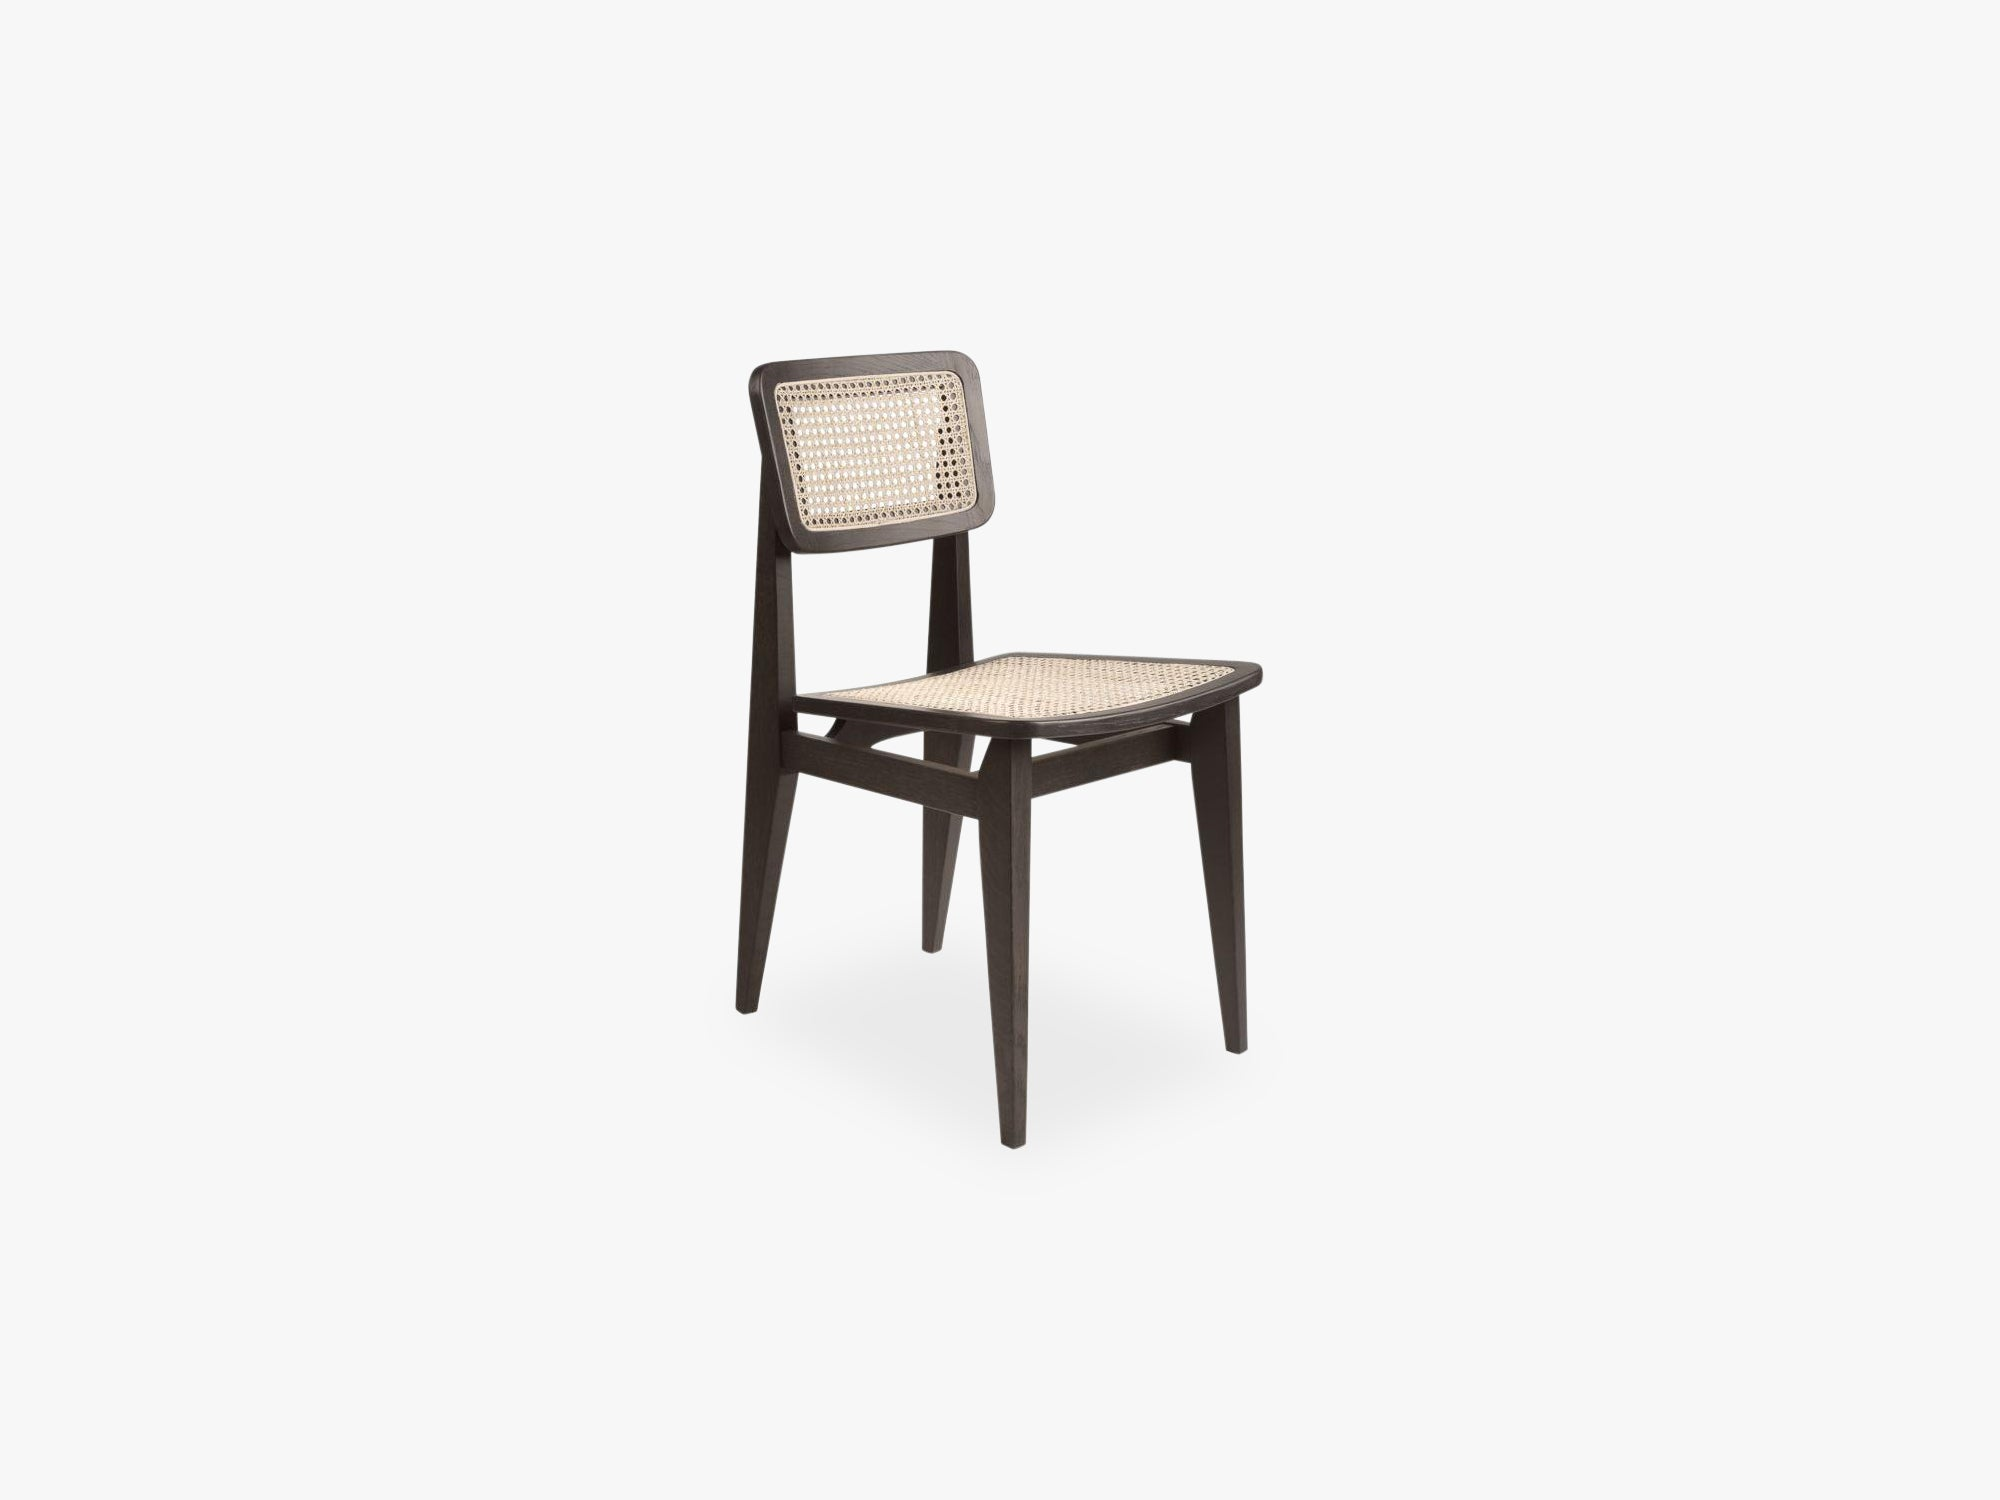 C-Chair Dining Chair - All French Cane, Brown/Black Stained Oak Lacquered fra GUBI